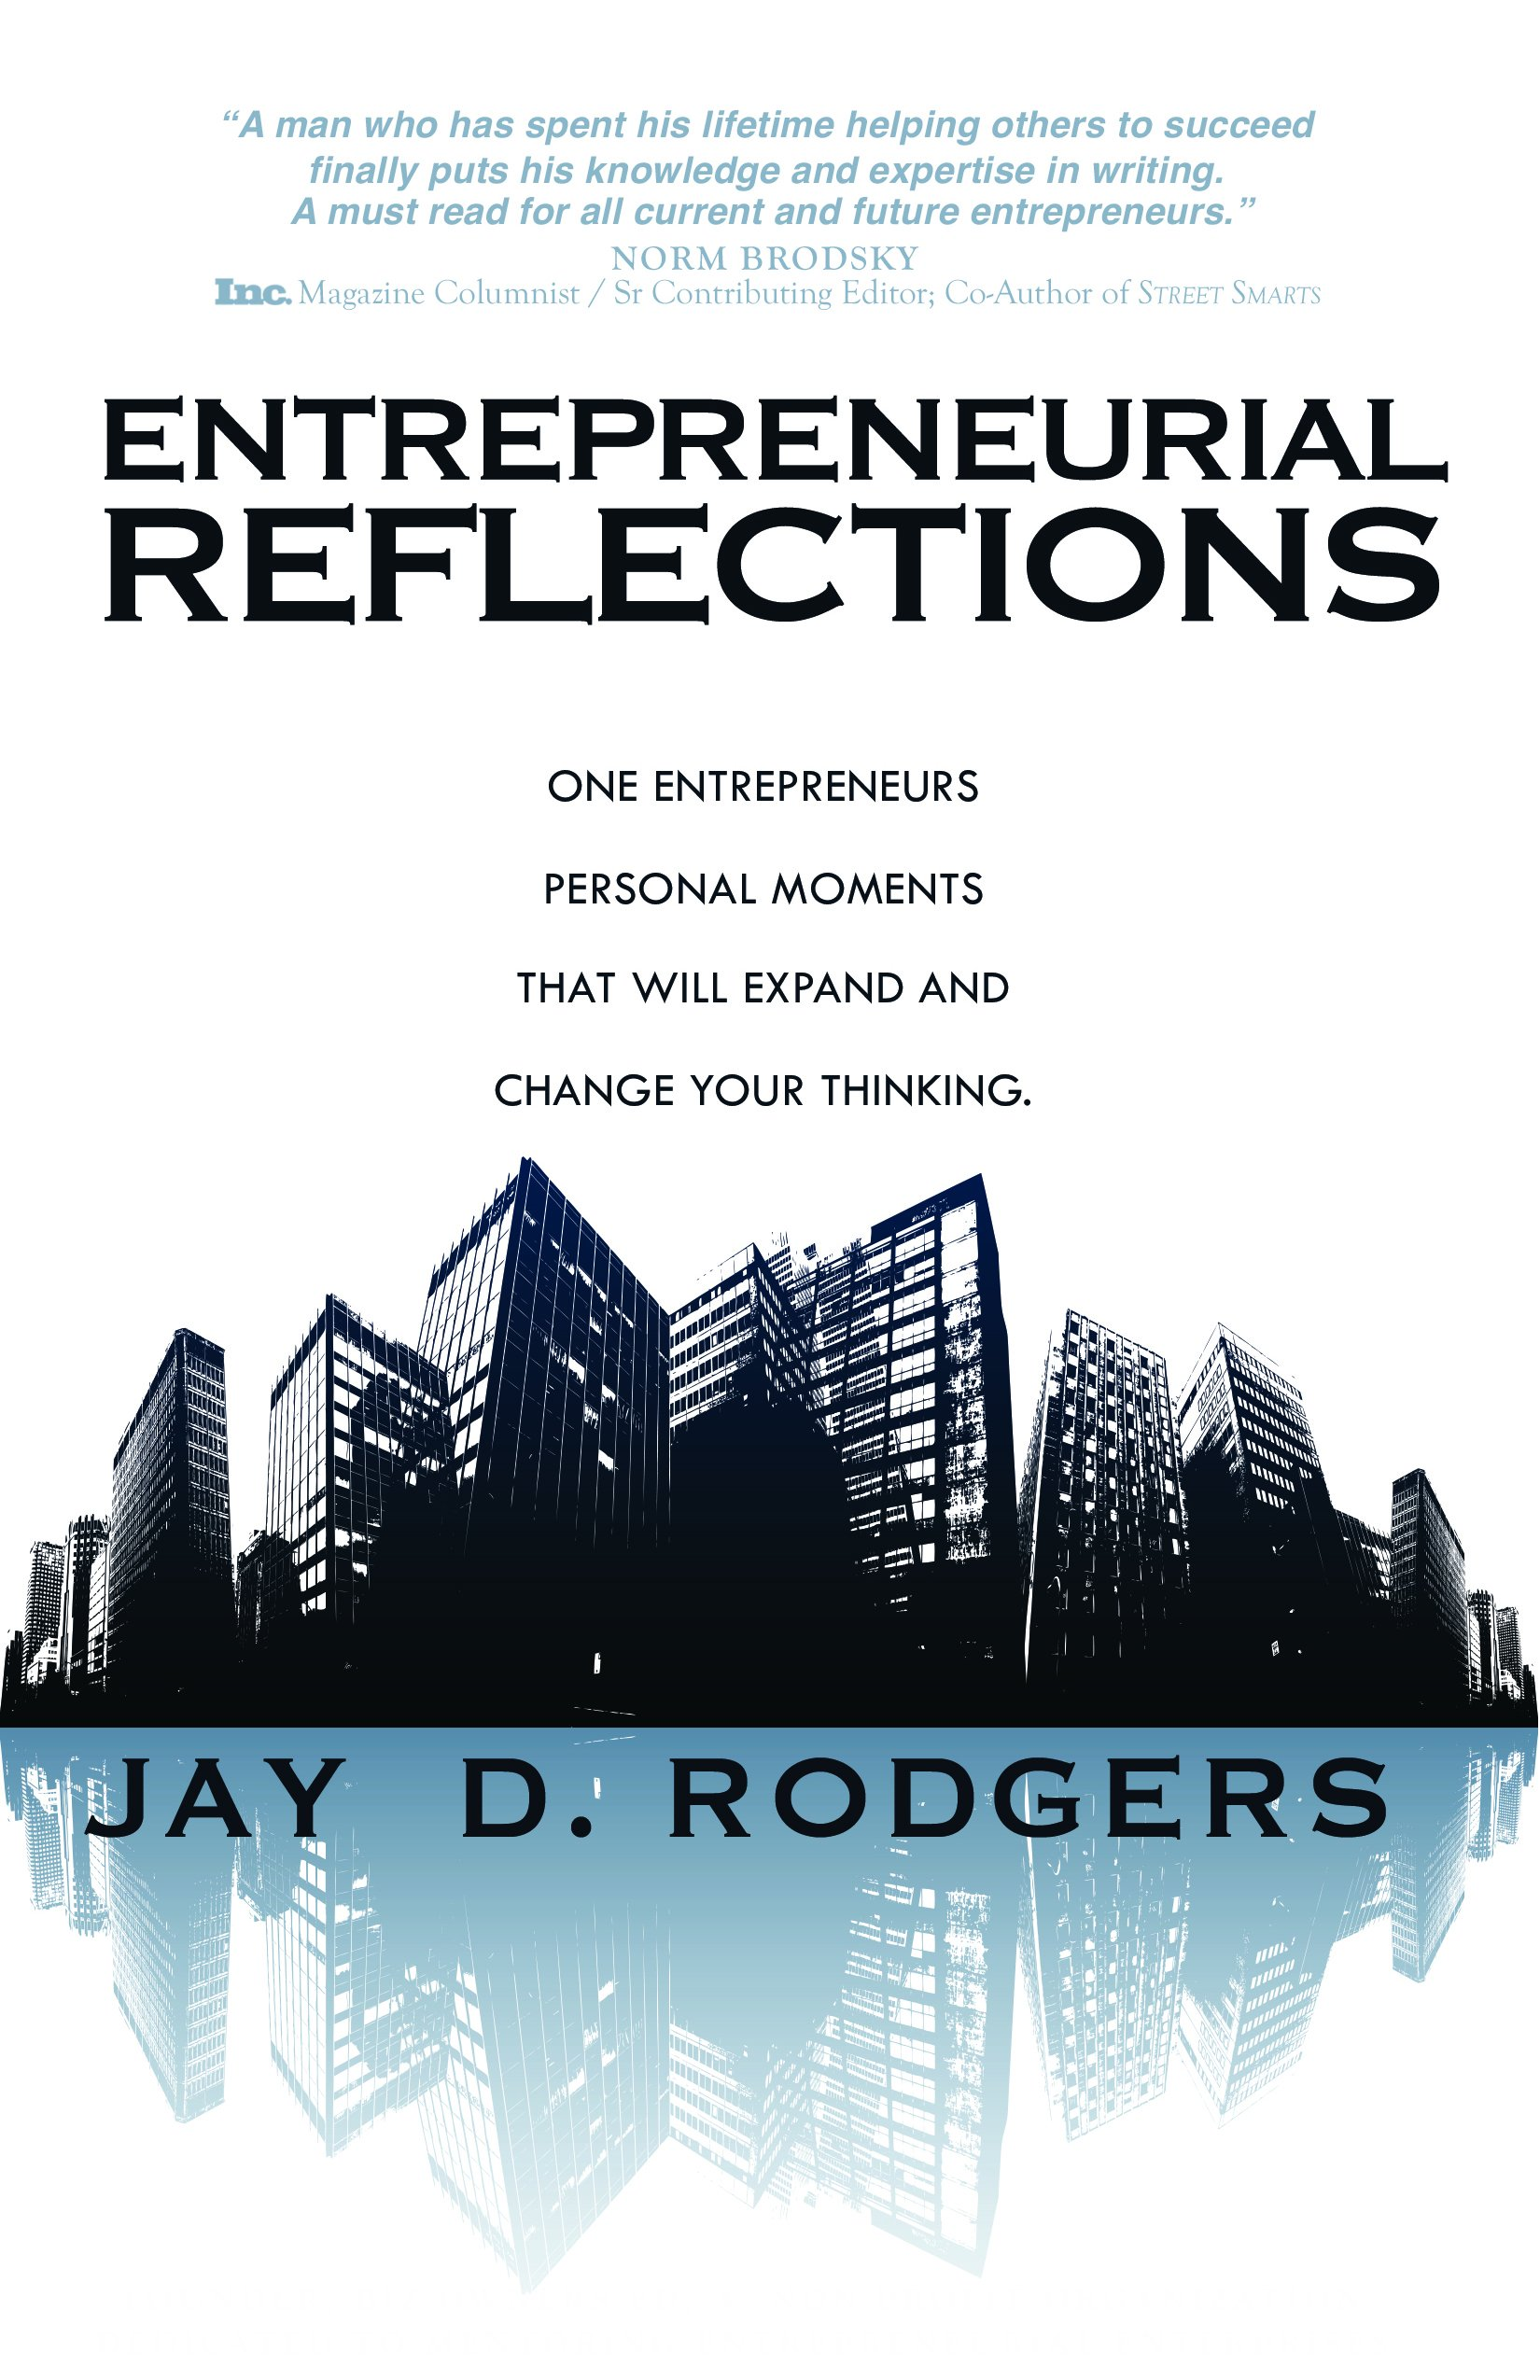 Entrepreneurial reflections one entrepreneurs personal moments entrepreneurial reflections one entrepreneurs personal moments that will expand and change the way you think jay rodgers 9781942557951 amazon fandeluxe Gallery